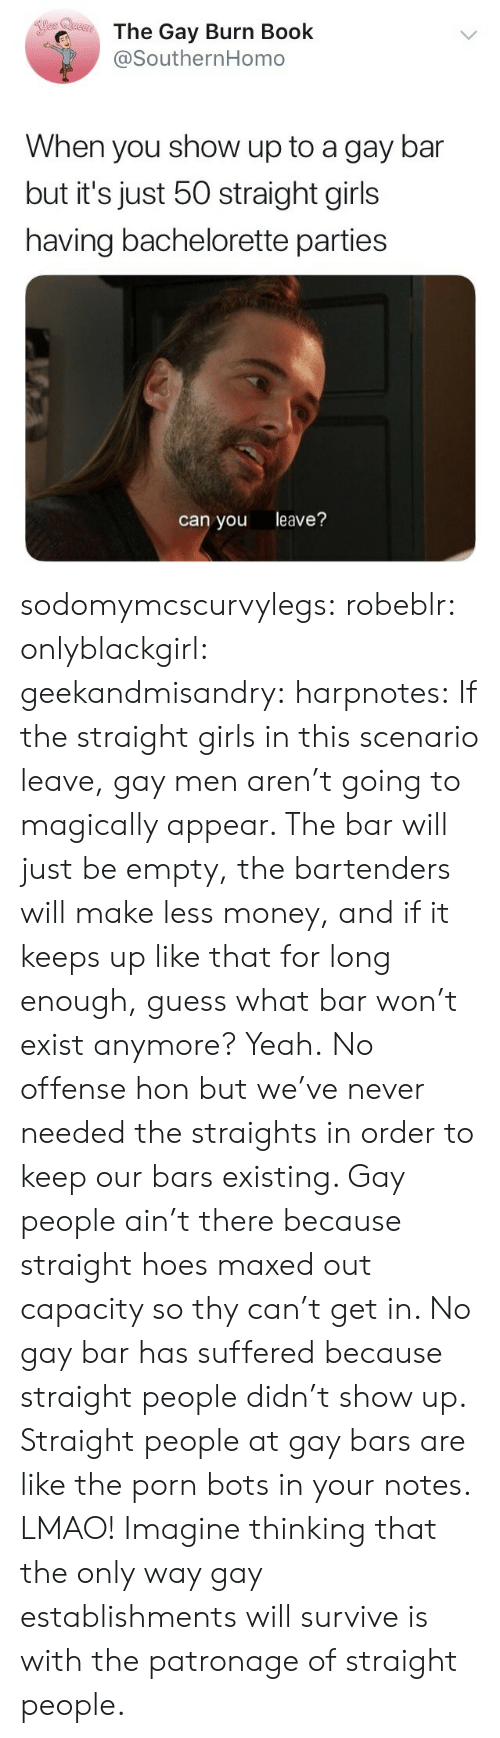 Girls, Hoes, and Lmao: The Gay Burn Book  @SouthernHomo  When you show up to a gay bar  but it's just 50 straight girls  having bachelorette parties  can you leave? sodomymcscurvylegs:  robeblr:  onlyblackgirl:   geekandmisandry:   harpnotes:  If the straight girls in this scenario leave, gay men aren't going to magically appear. The bar will just be empty, the bartenders will make less money, and if it keeps up like that for long enough, guess what bar won't exist anymore? Yeah.  No offense hon but we've never needed the straights in order to keep our bars existing.    Gay people ain't there because straight hoes maxed out capacity so thy can't get in. No gay bar has suffered because straight people didn't show up.    Straight people at gay bars are like the porn bots in your notes.   LMAO! Imagine thinking that the only way gay establishments will survive is with the patronage of straight people.